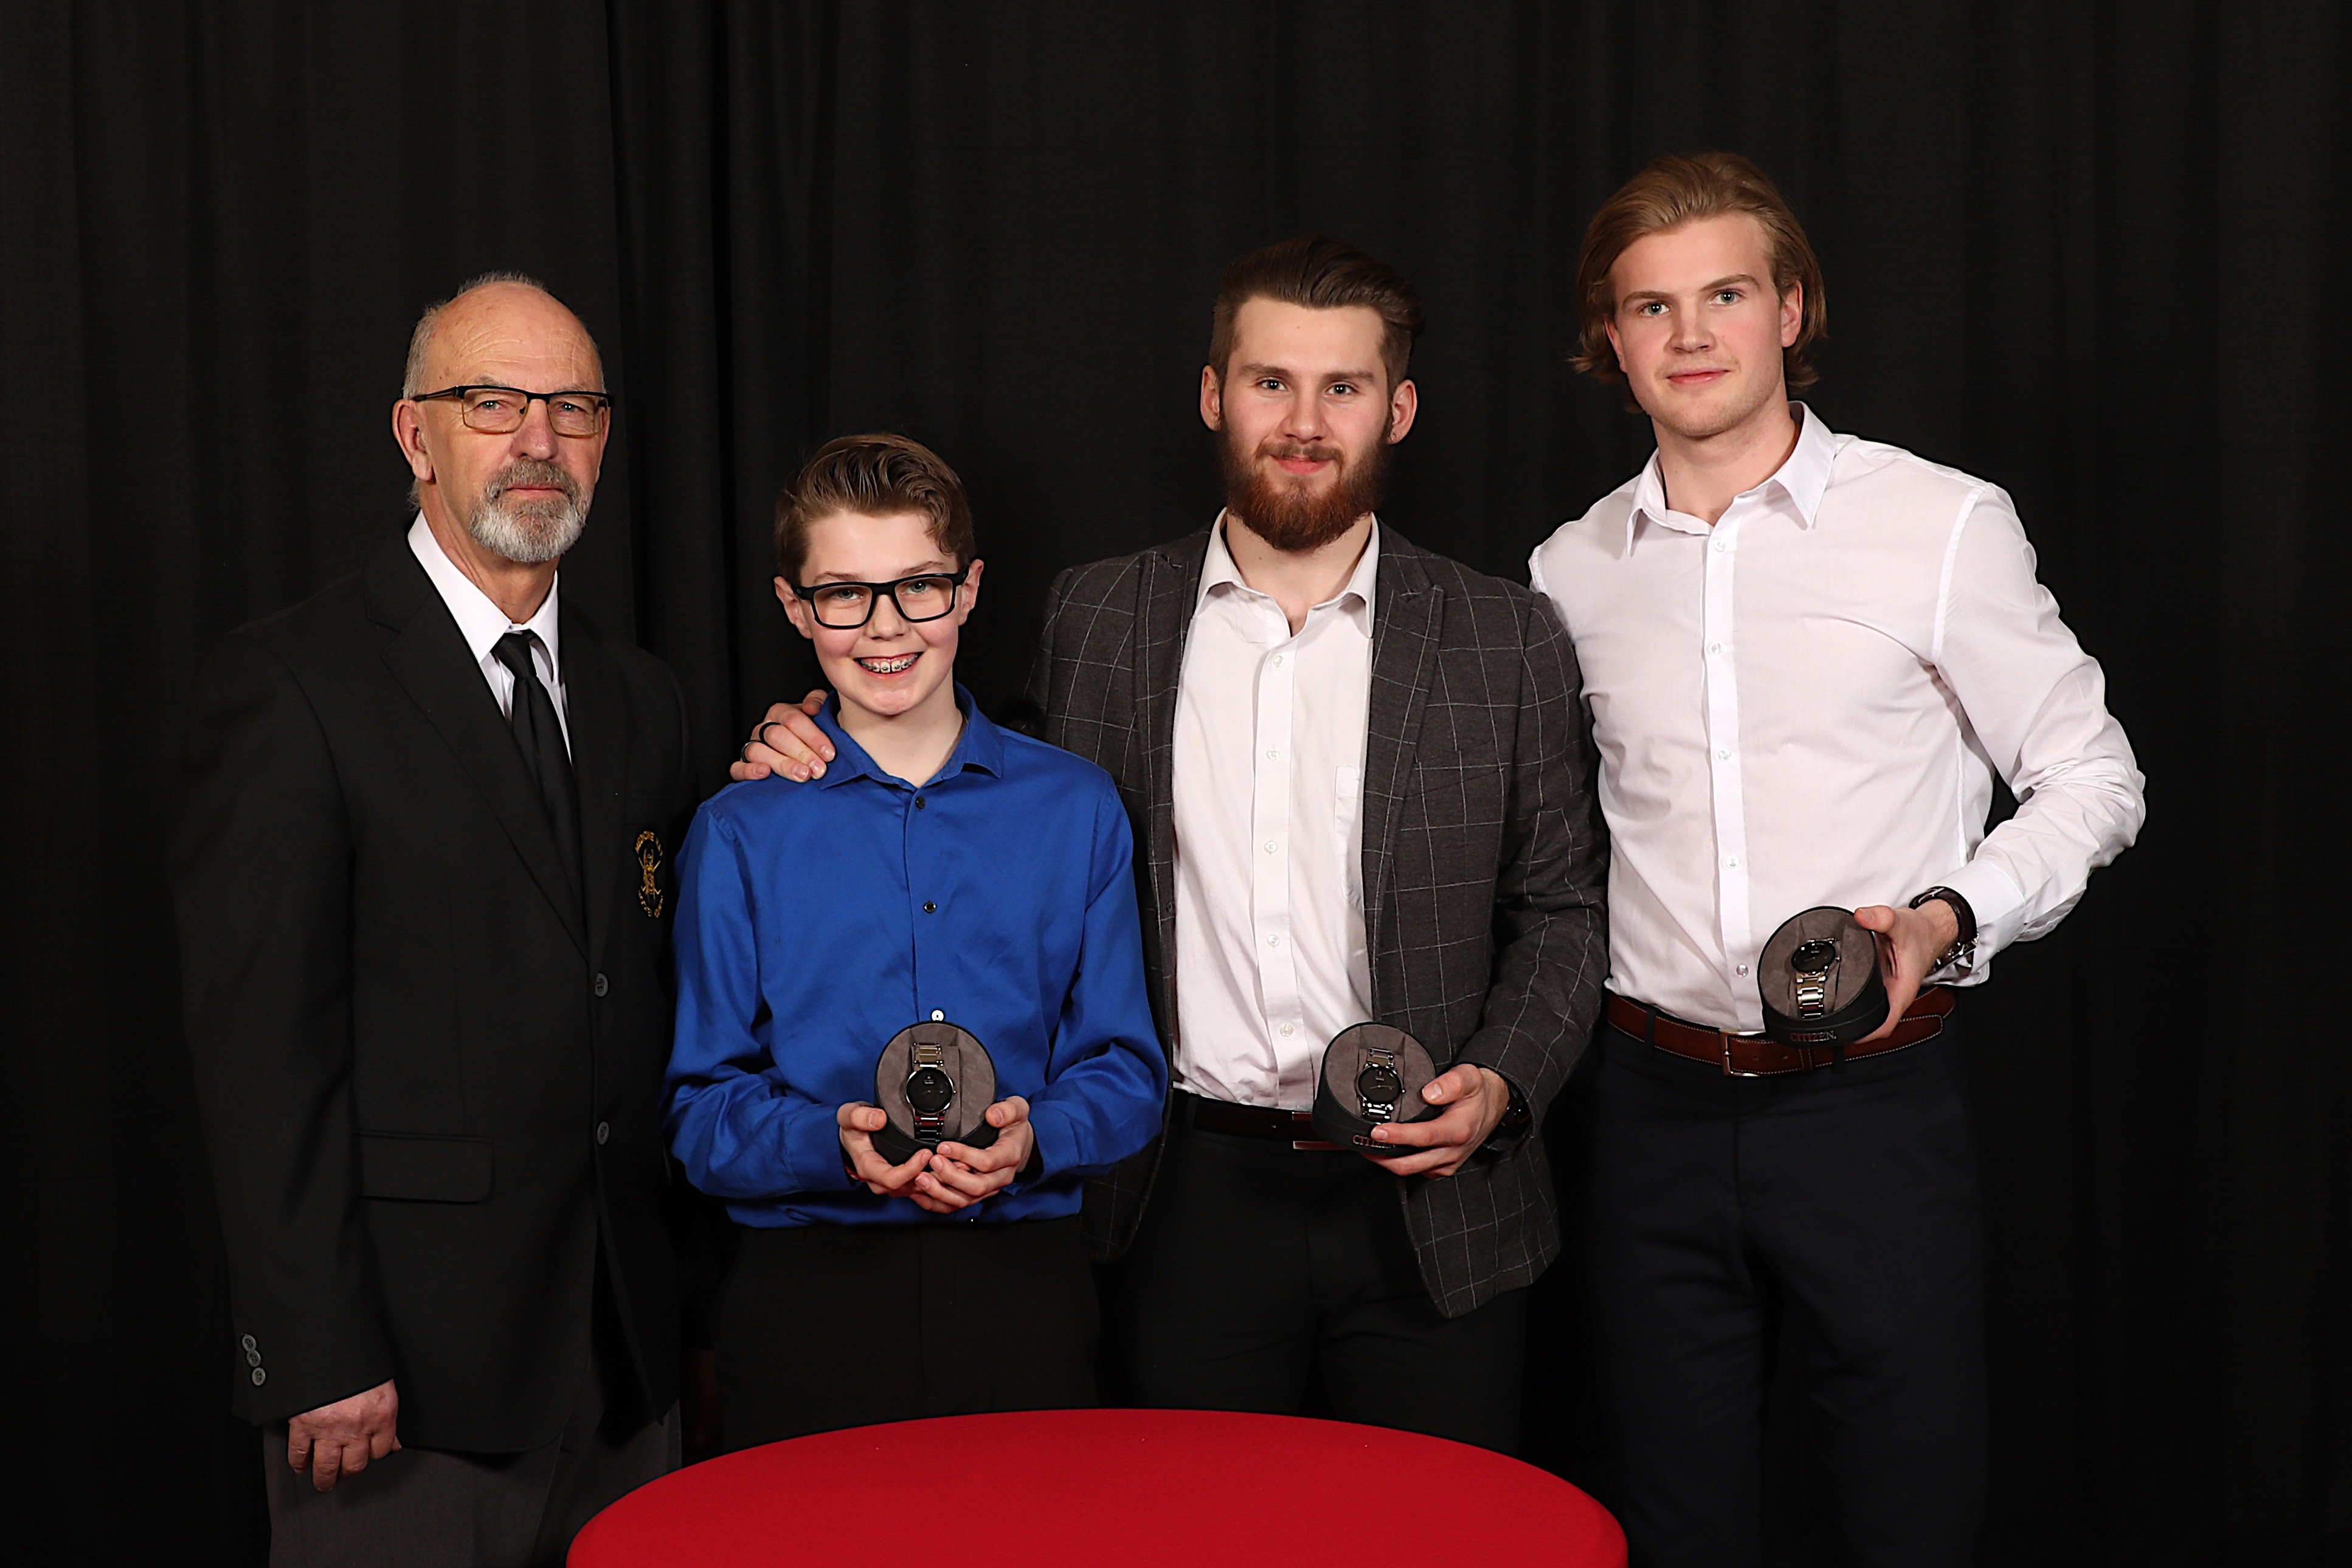 George Hamel of the Medicine Hat Hockey Hounds presented Ryan Jevne, Linus Nassen & Dylan MacPherson with watches (Landon MacPherson accepted on Dylan's behalf)